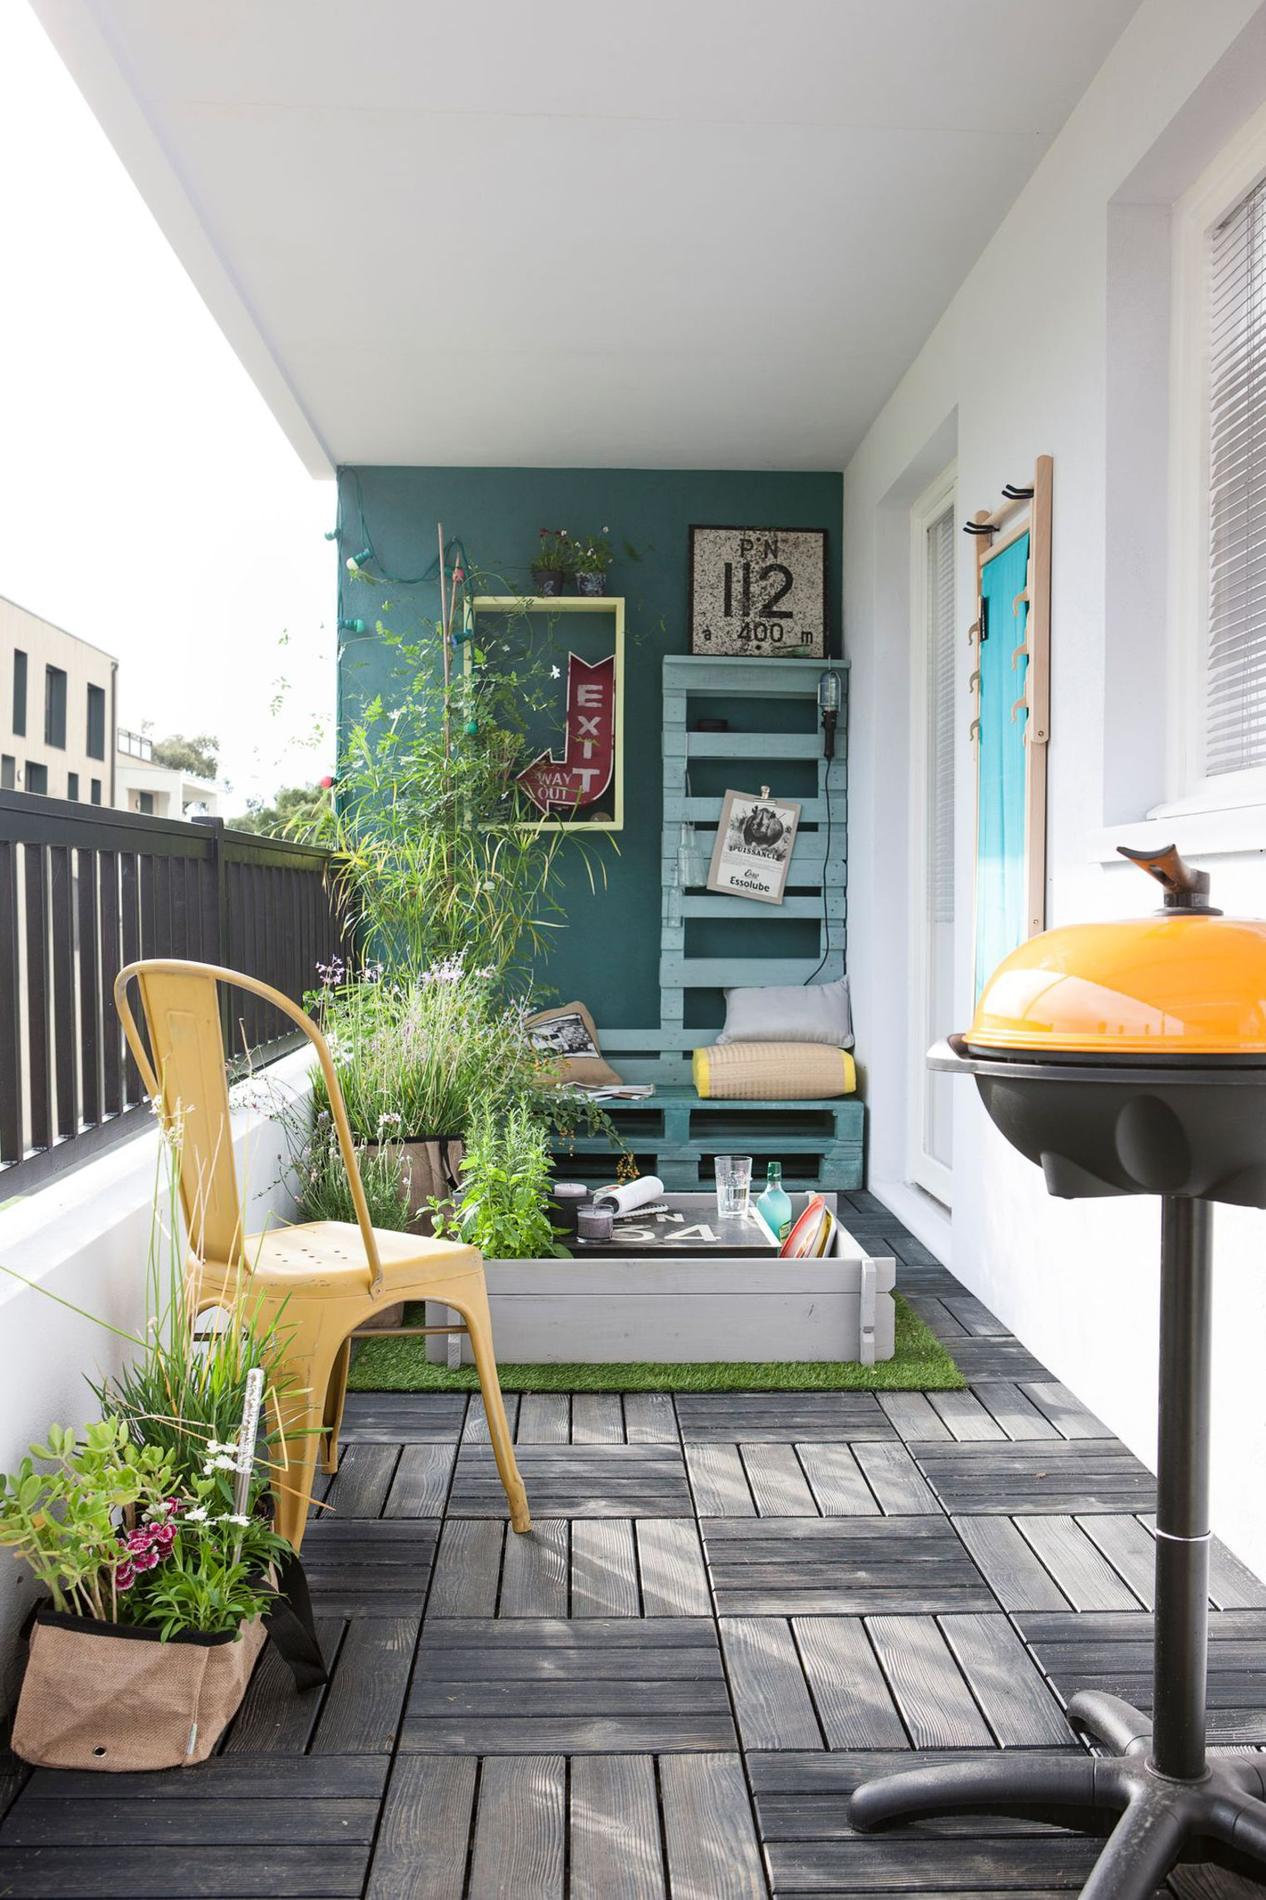 Comment donner du style vos balcons et terrasses for Deco balcon terrasse